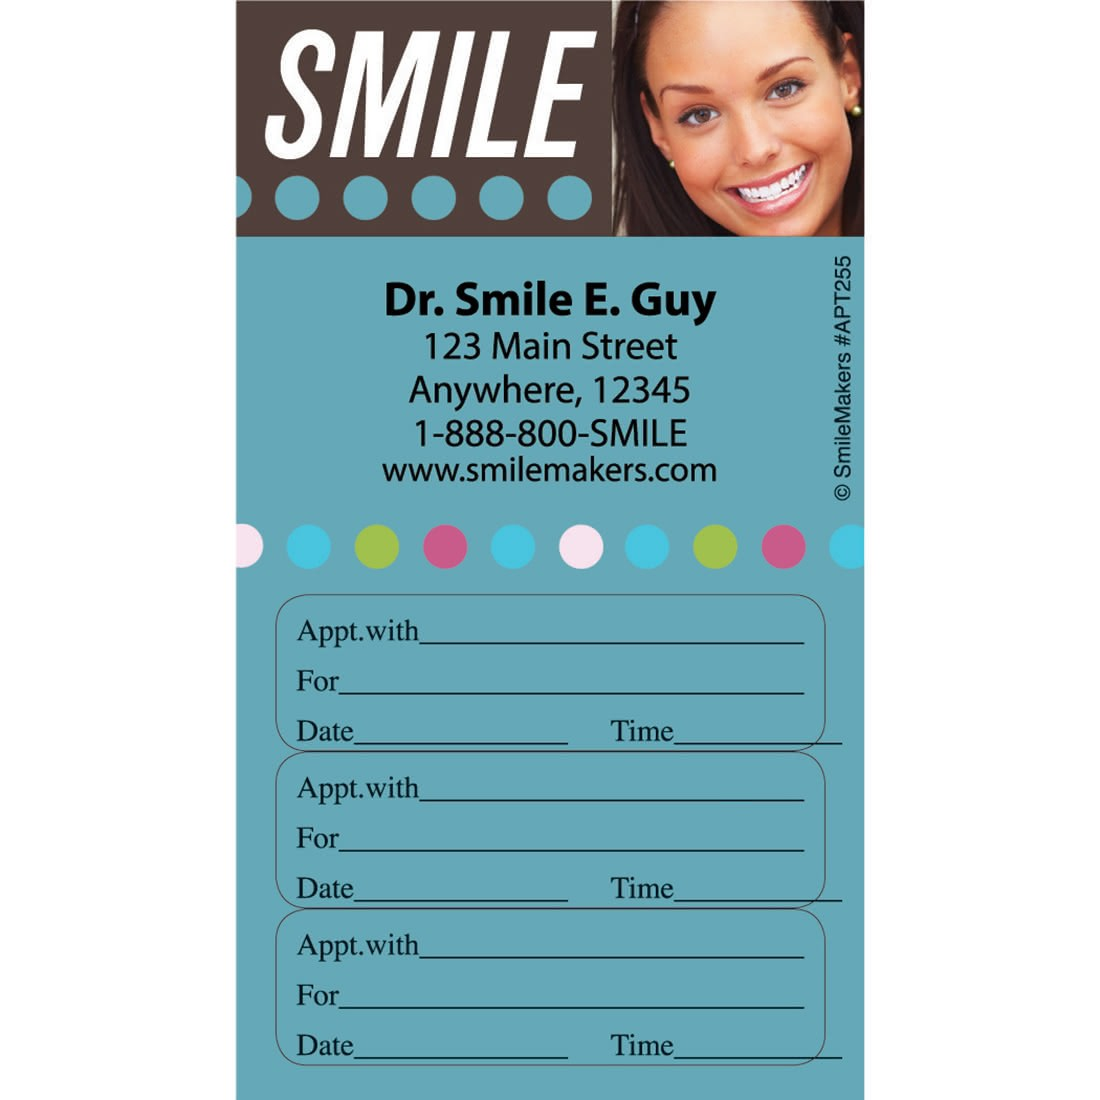 Custom Smile Dots Three Sticker Appointment Cards [image]